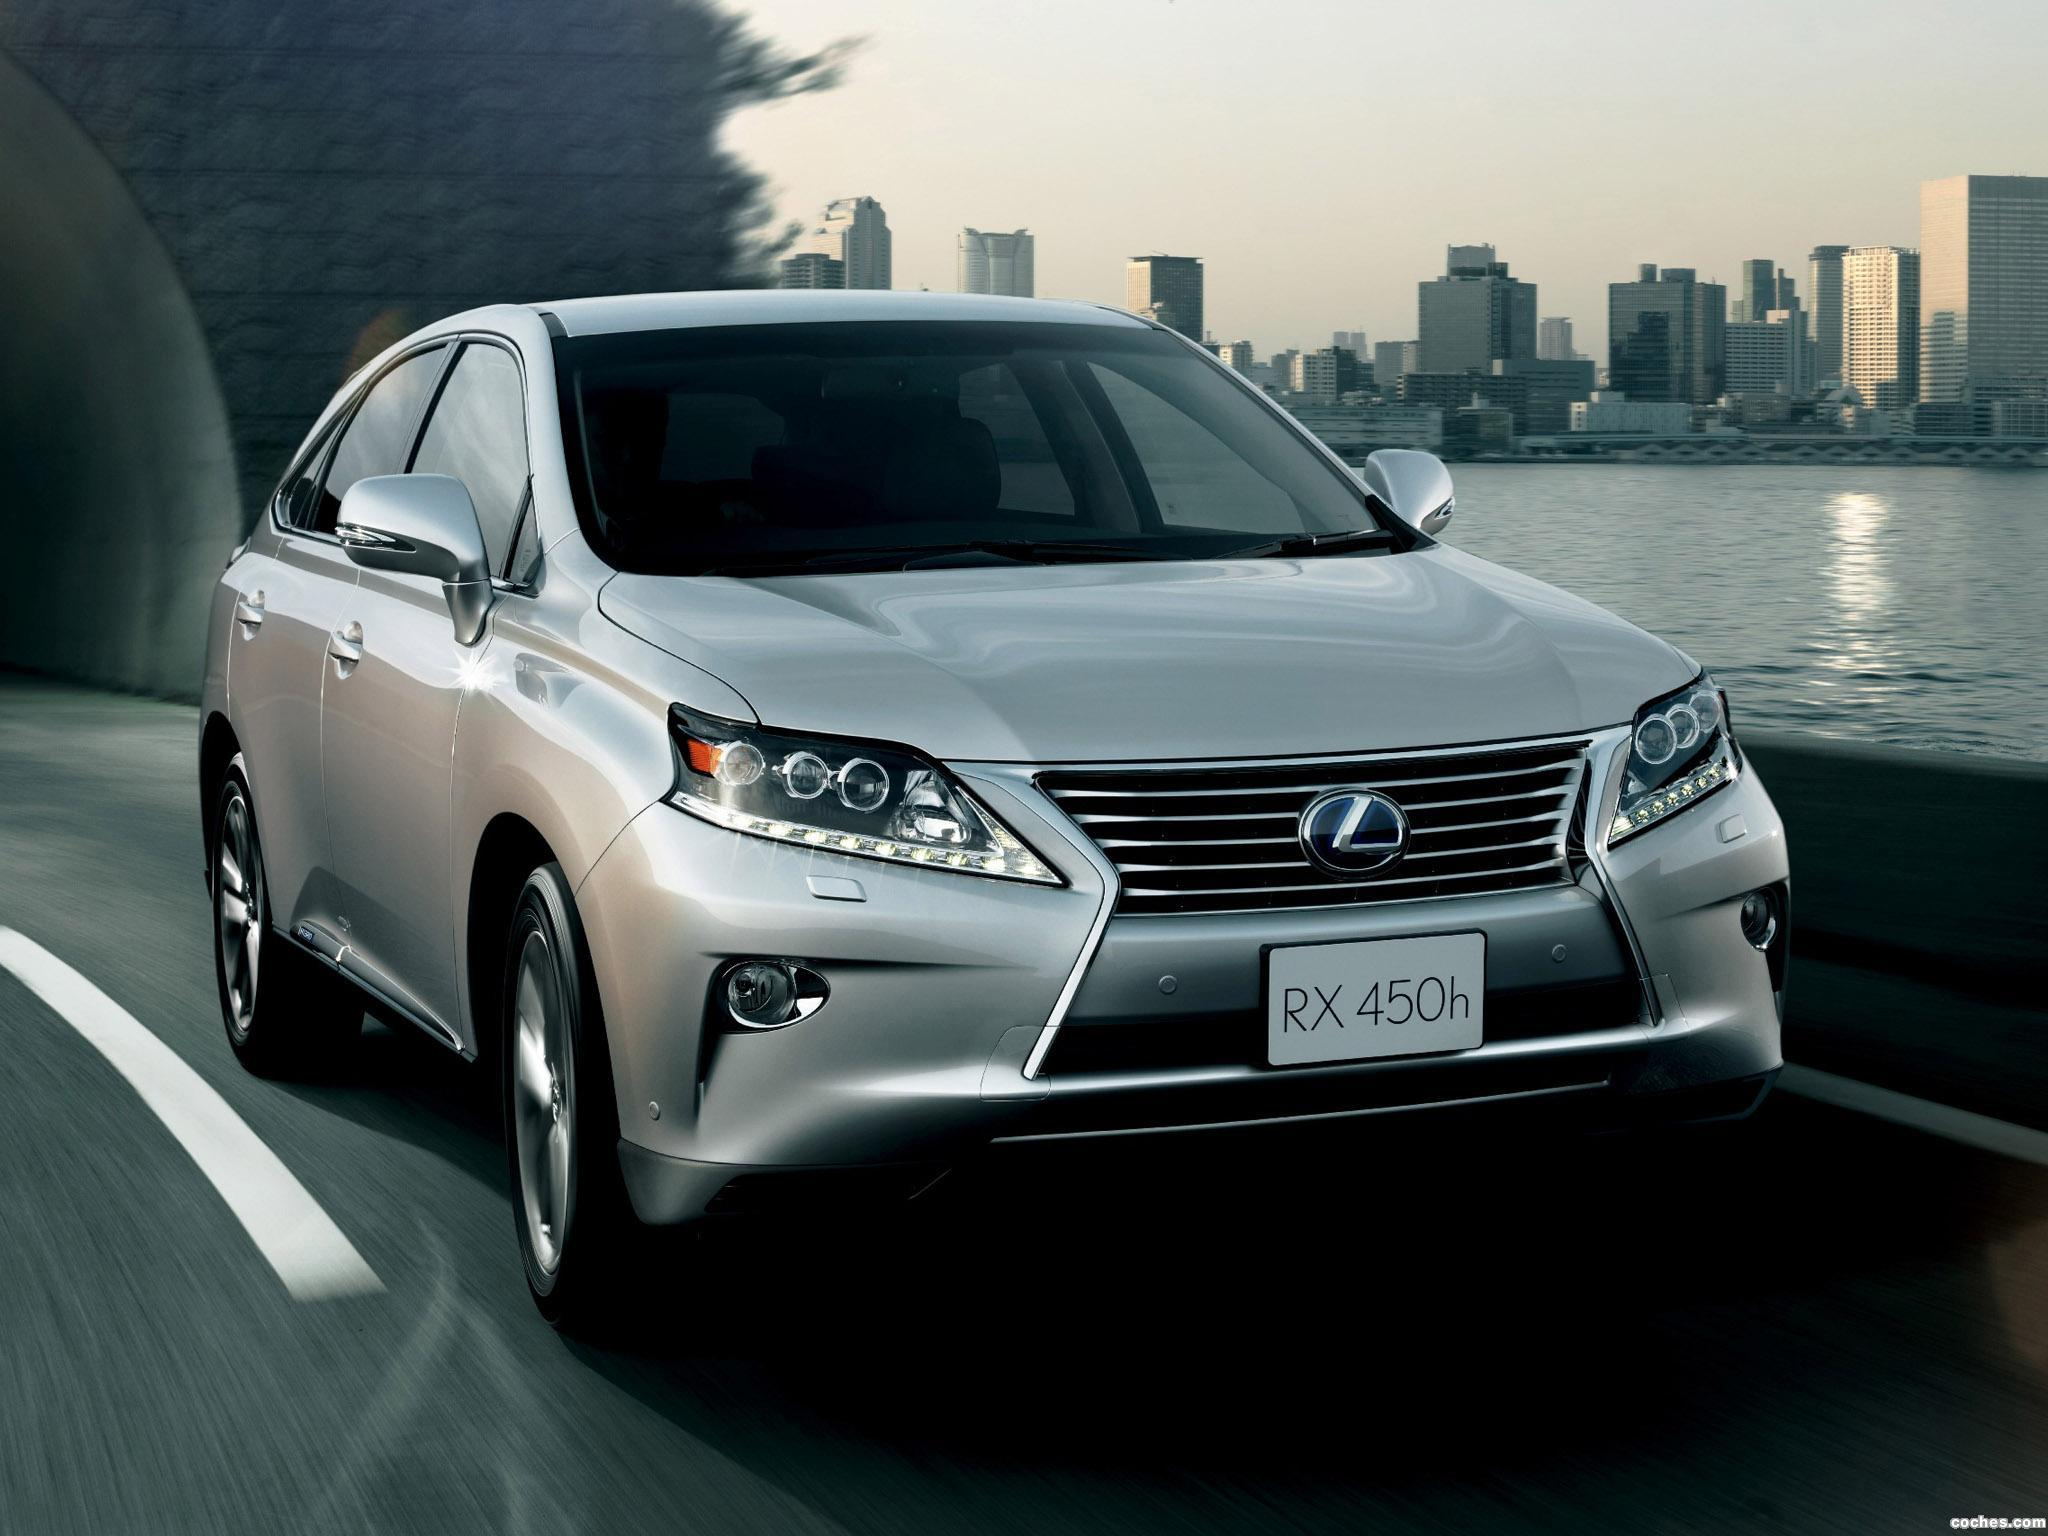 fotos de lexus rx 450h version l 2012 foto 2. Black Bedroom Furniture Sets. Home Design Ideas